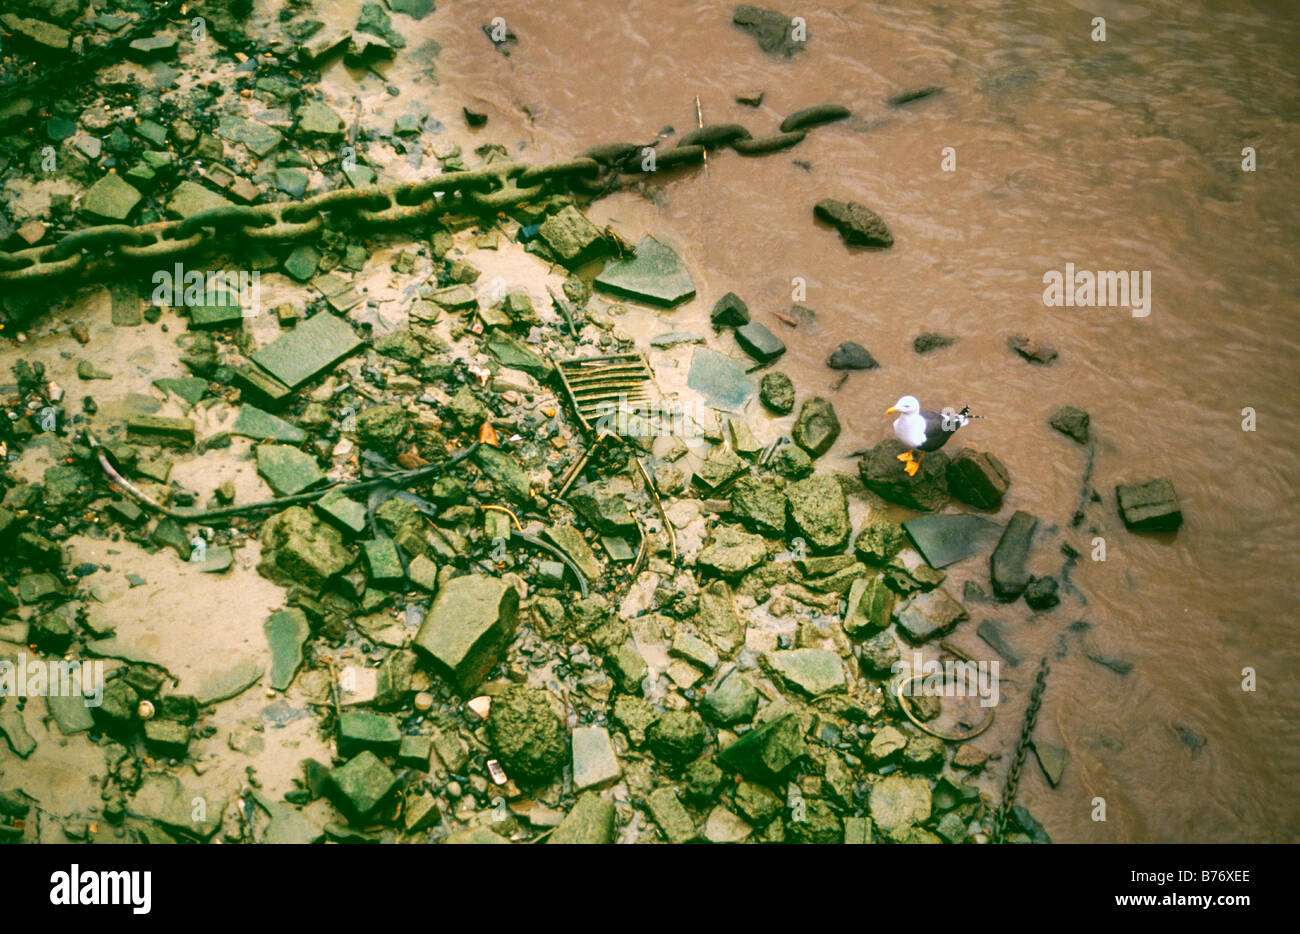 Black-backed Gull perched amongst rubble and waste along the shores of the River Thames, London, UK - Stock Image